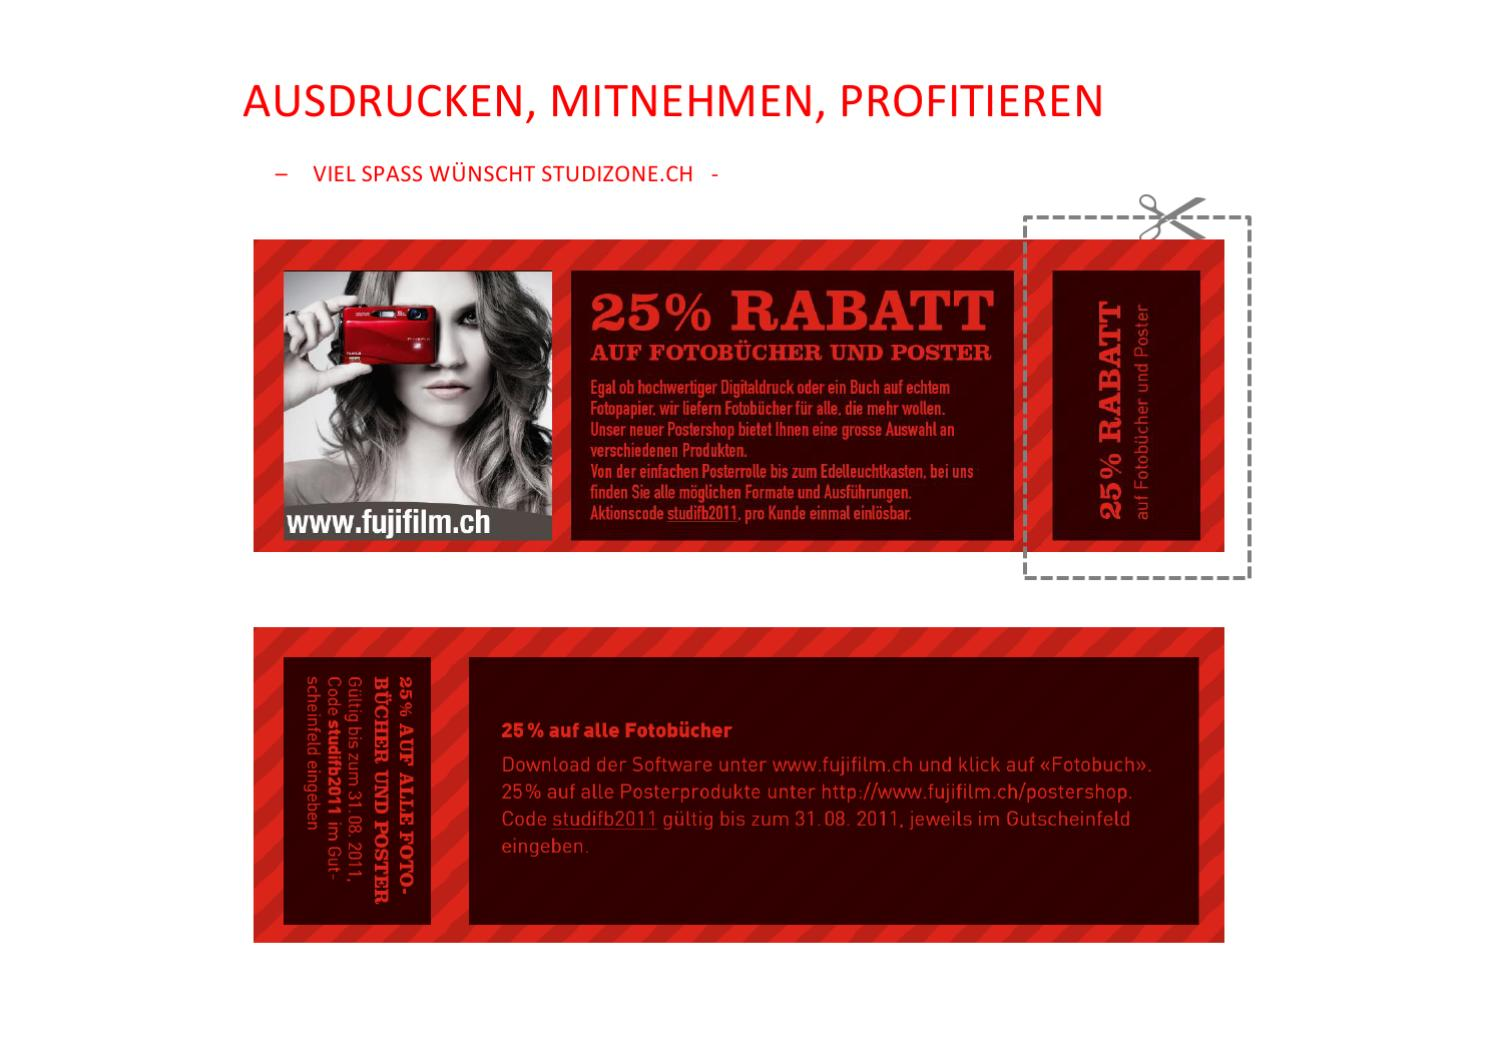 /fujifilm_rabatt-coupons by Marcel Wehrle - Issuu